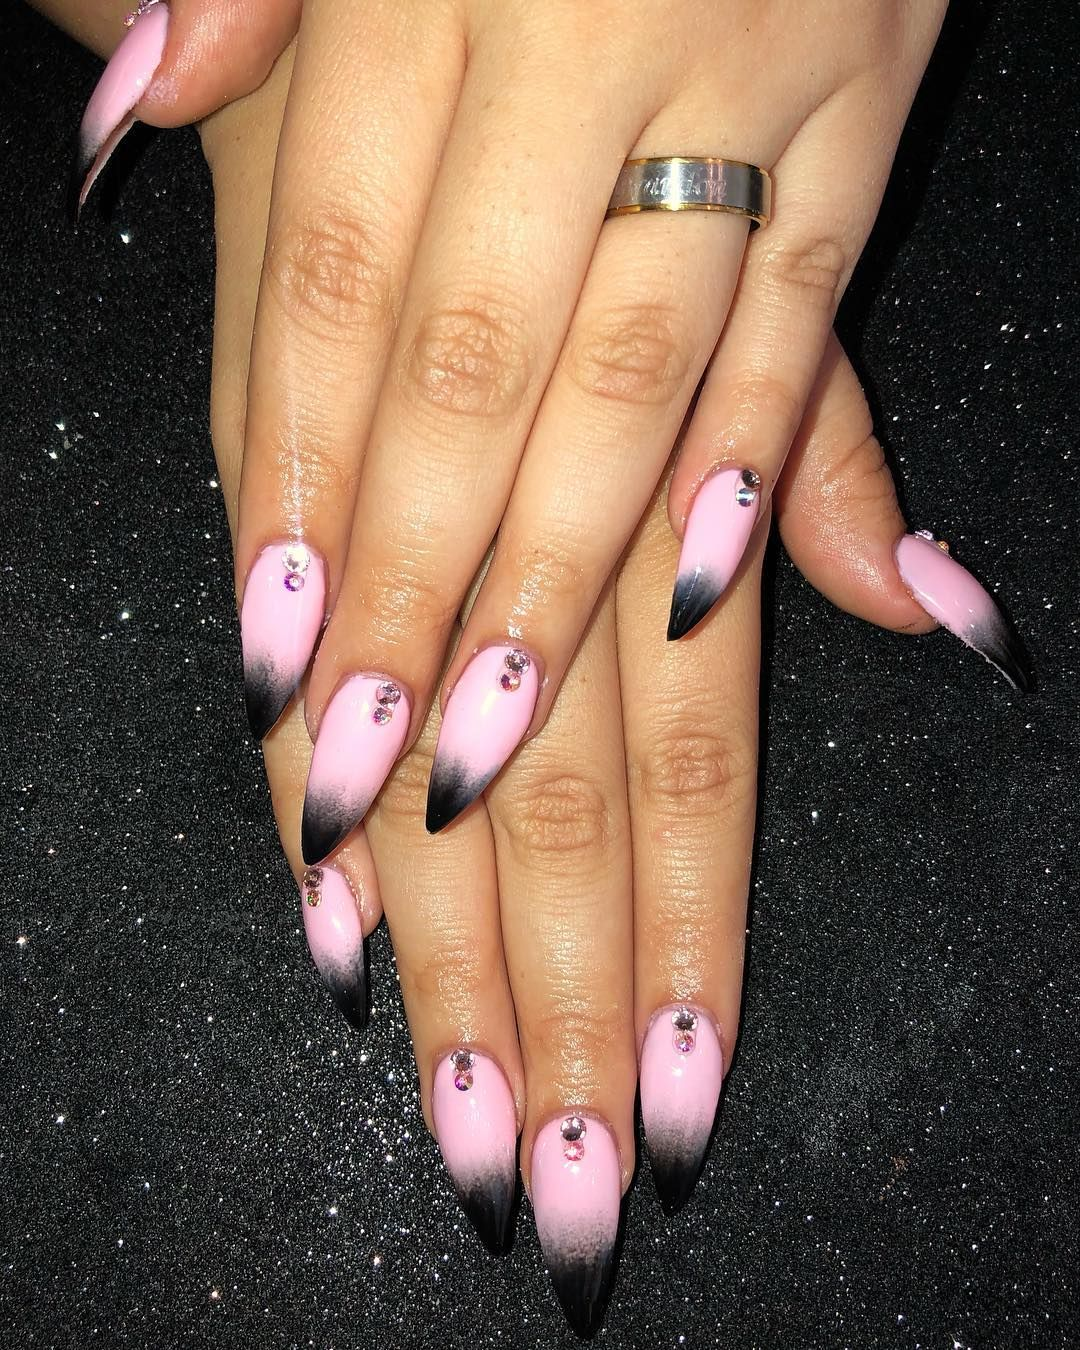 Flash Was Needed For These Pastel Goth Inspired Kitten Claws With Crystal Accents Nails Acrylicnails Naildesigns Gel Pastel Goth Nails Goth Nails Nails